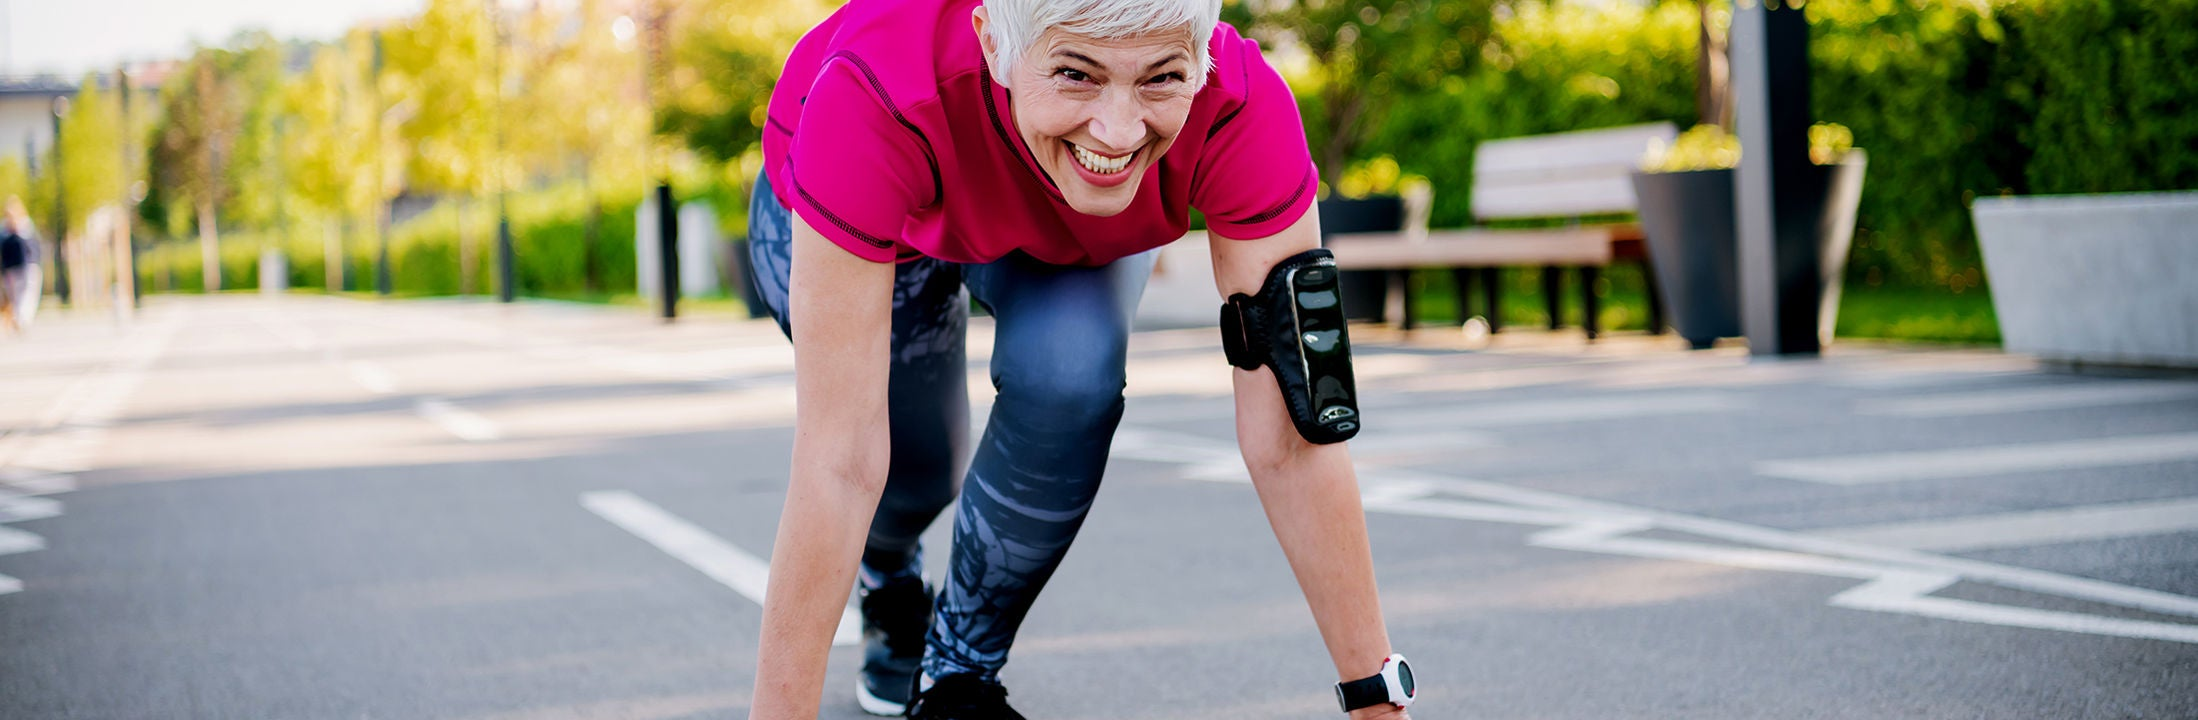 A sporty elderly woman in running clothes is ready to sprint on the open road